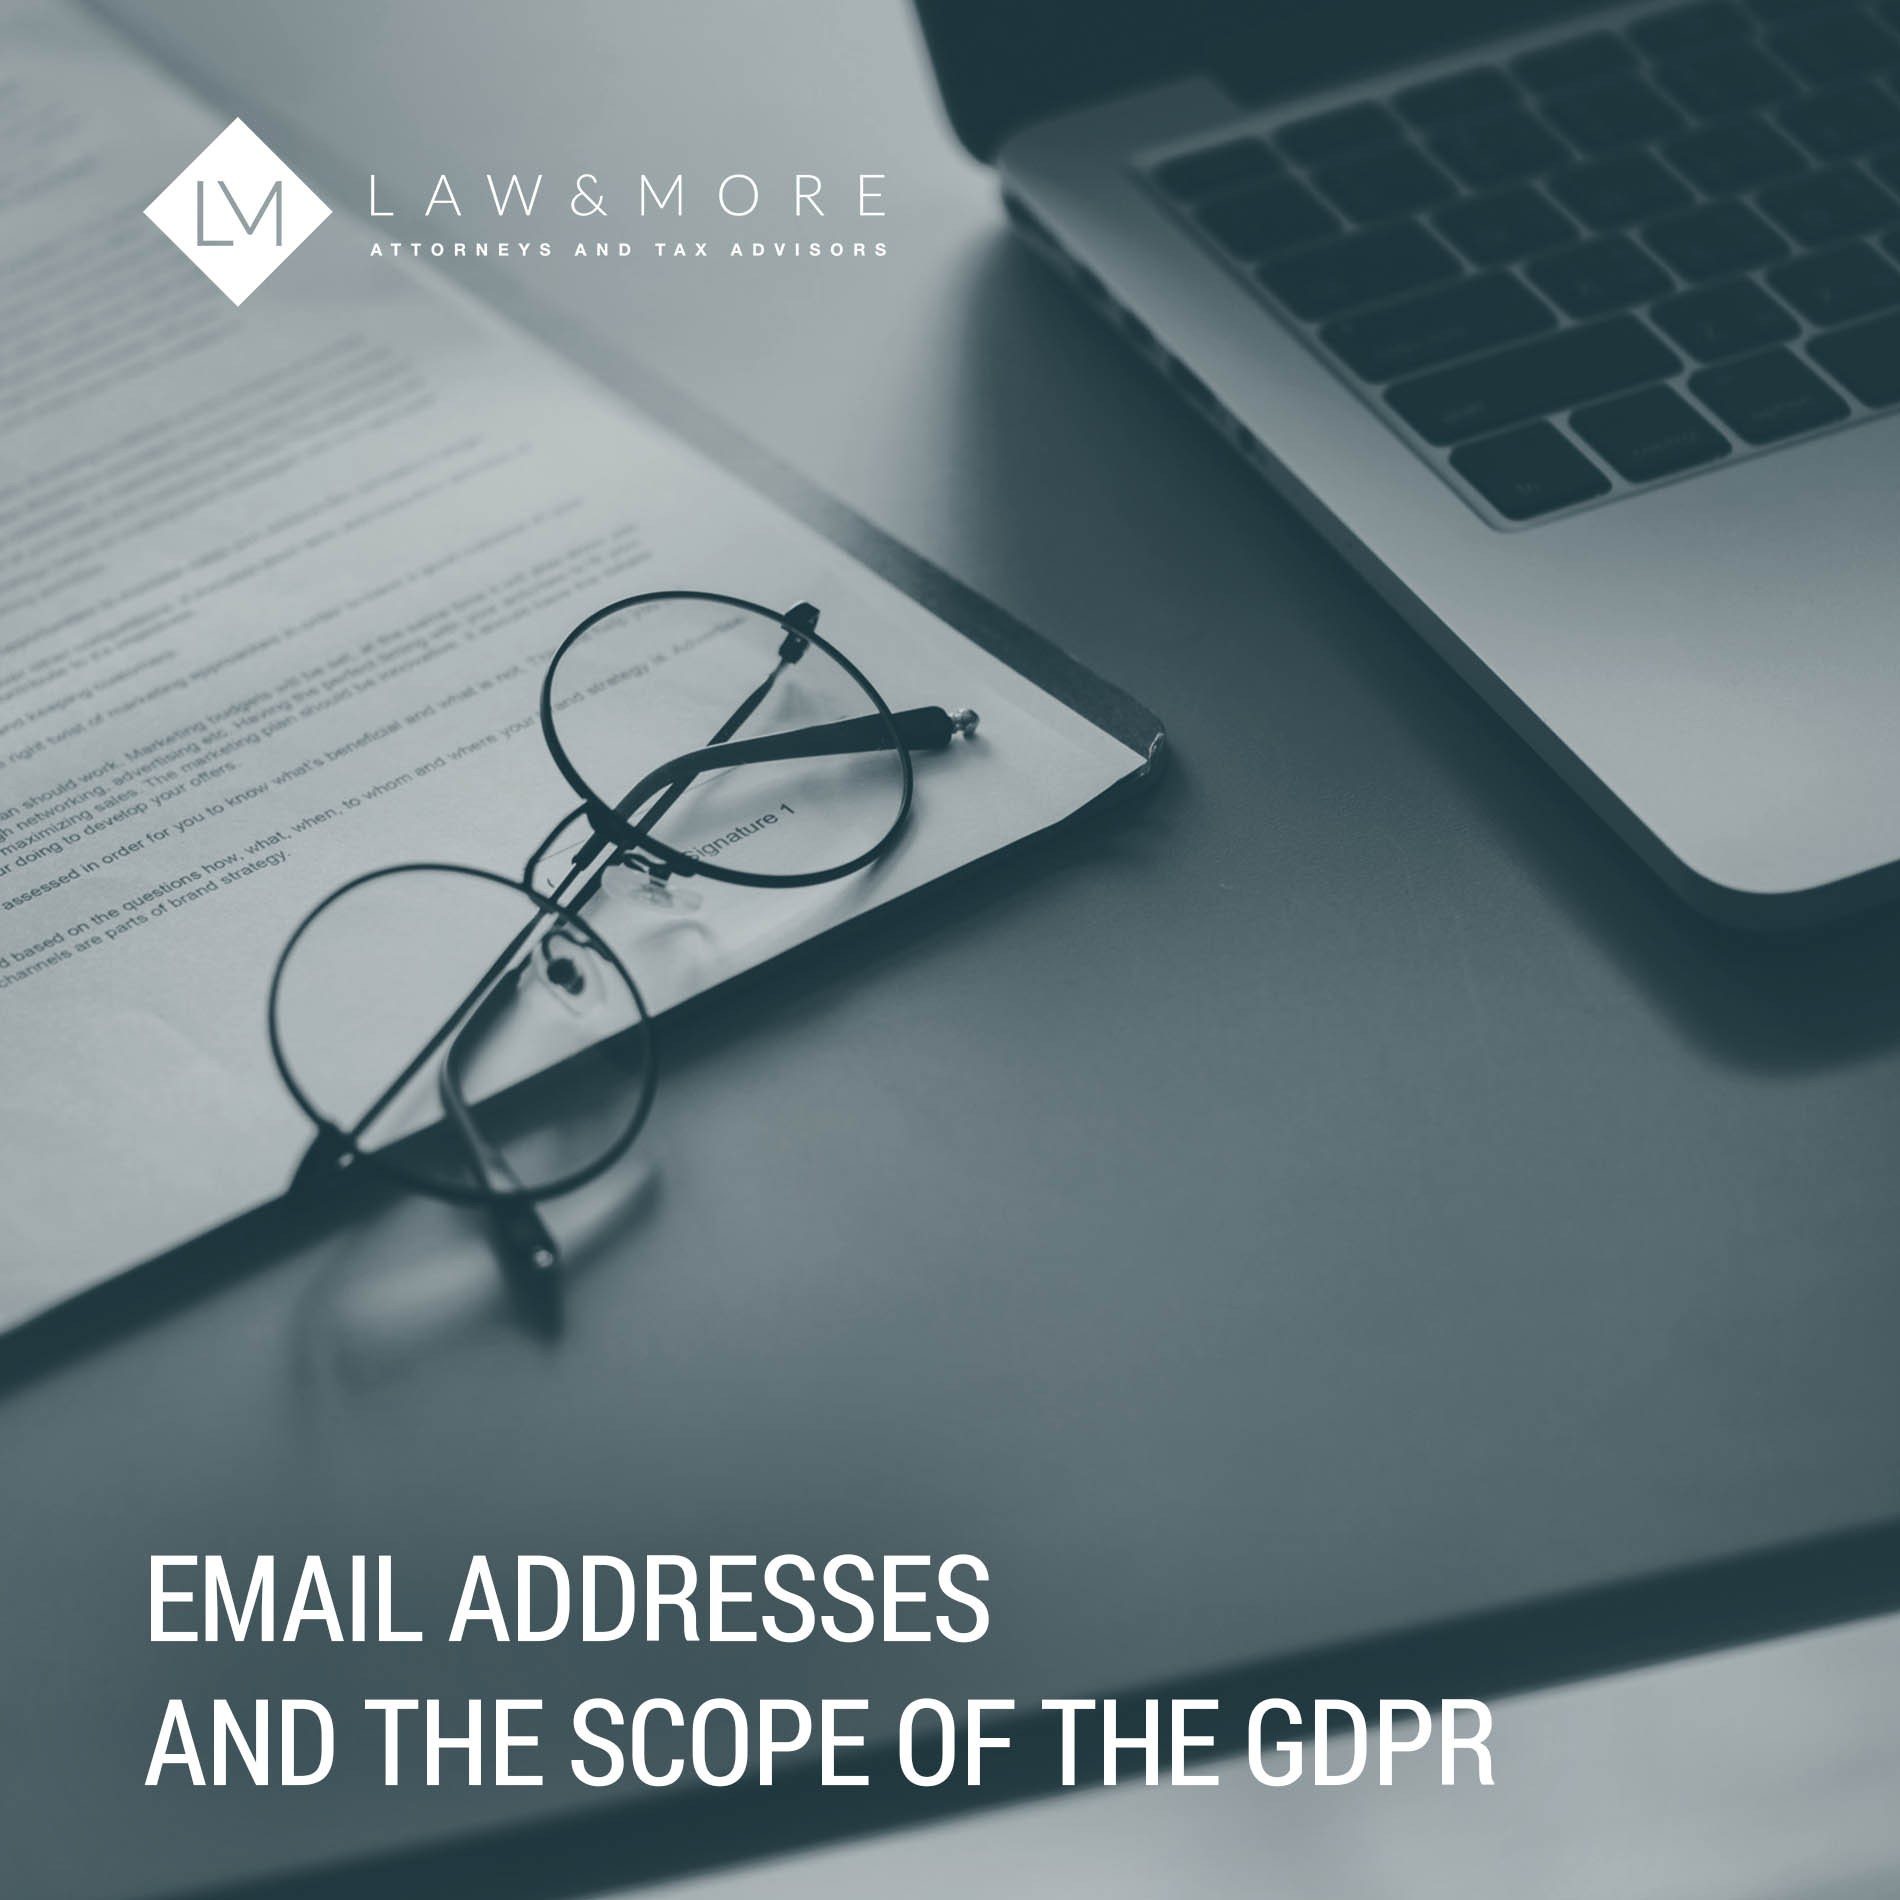 Email addresses and the scope of the GDPR - Image